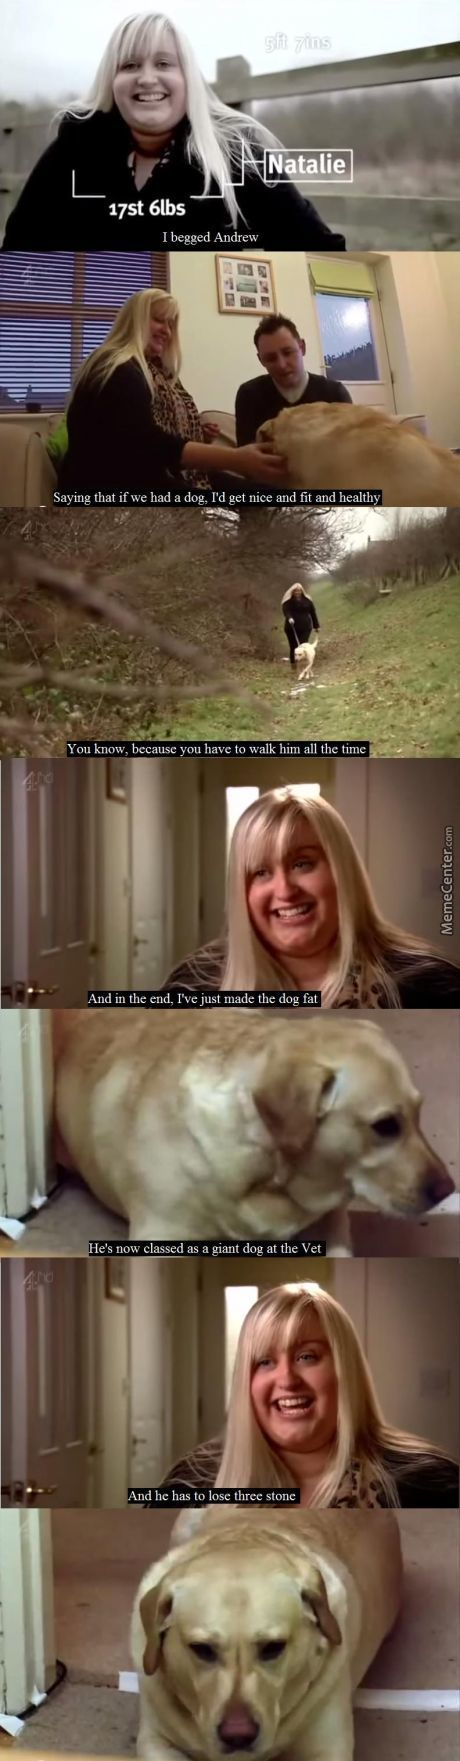 That Poor Dog...